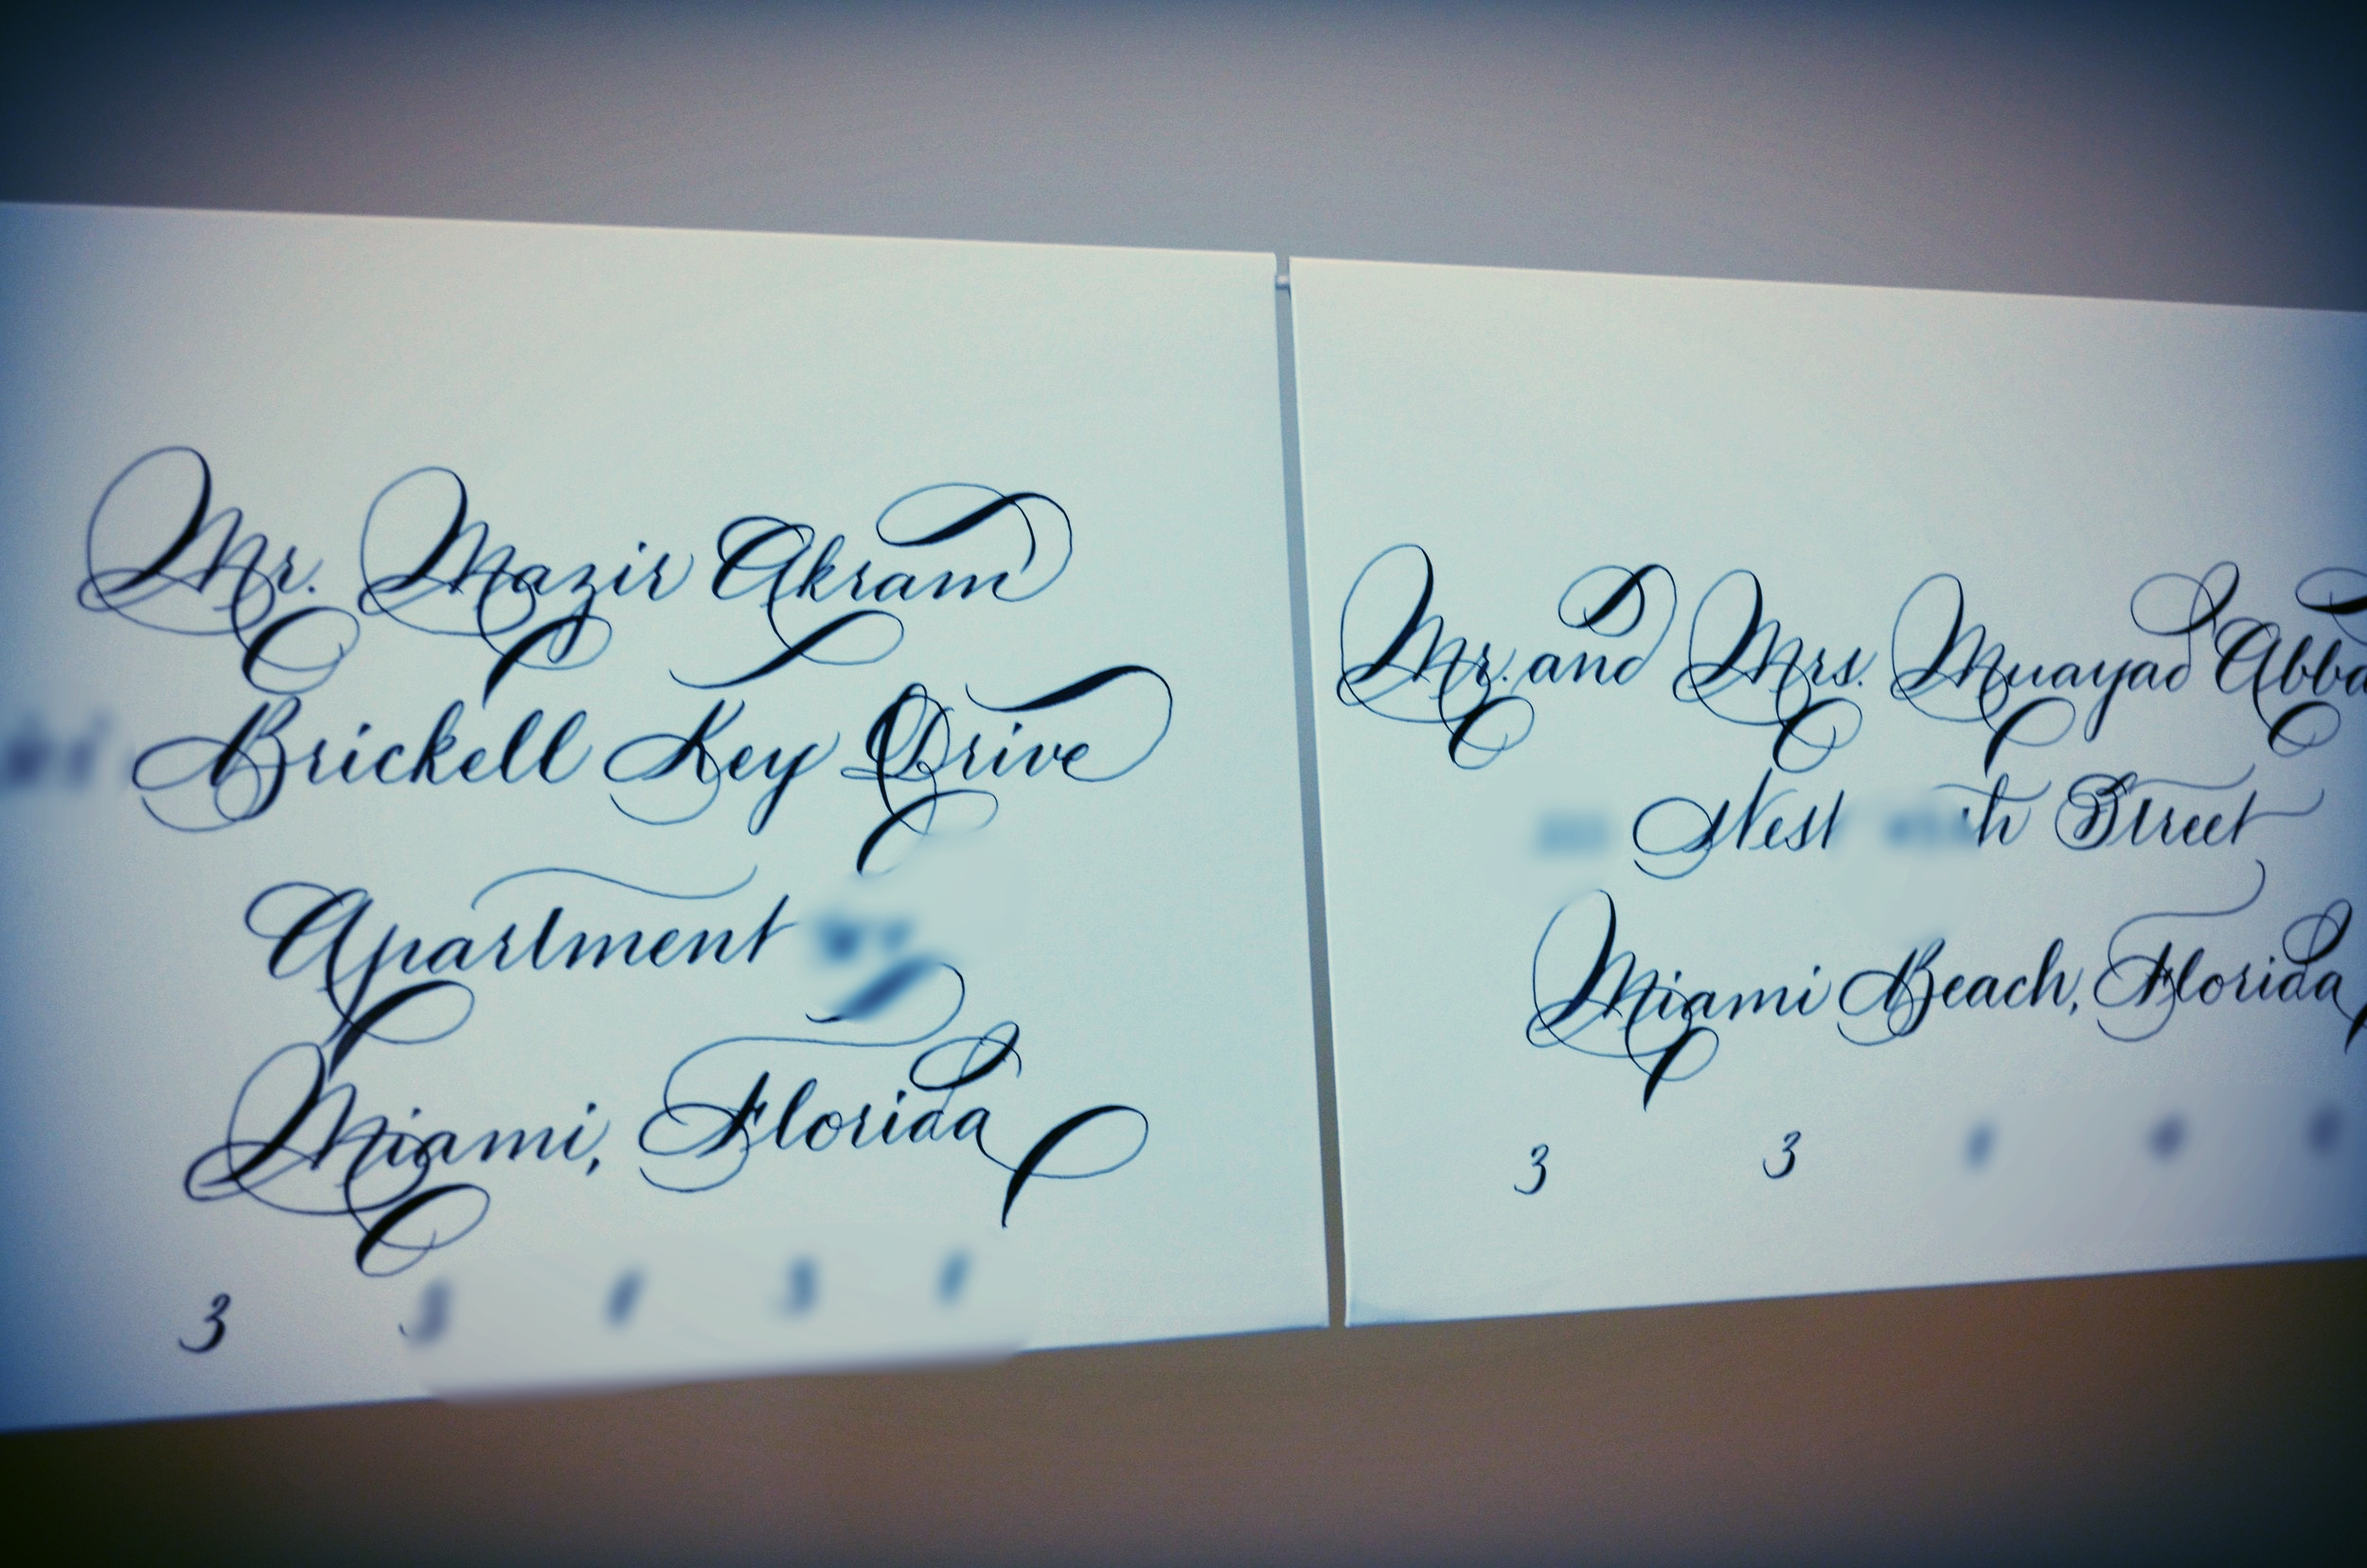 Houston Calligraphy Calligrapher 1 Sept 2015 6.jpg